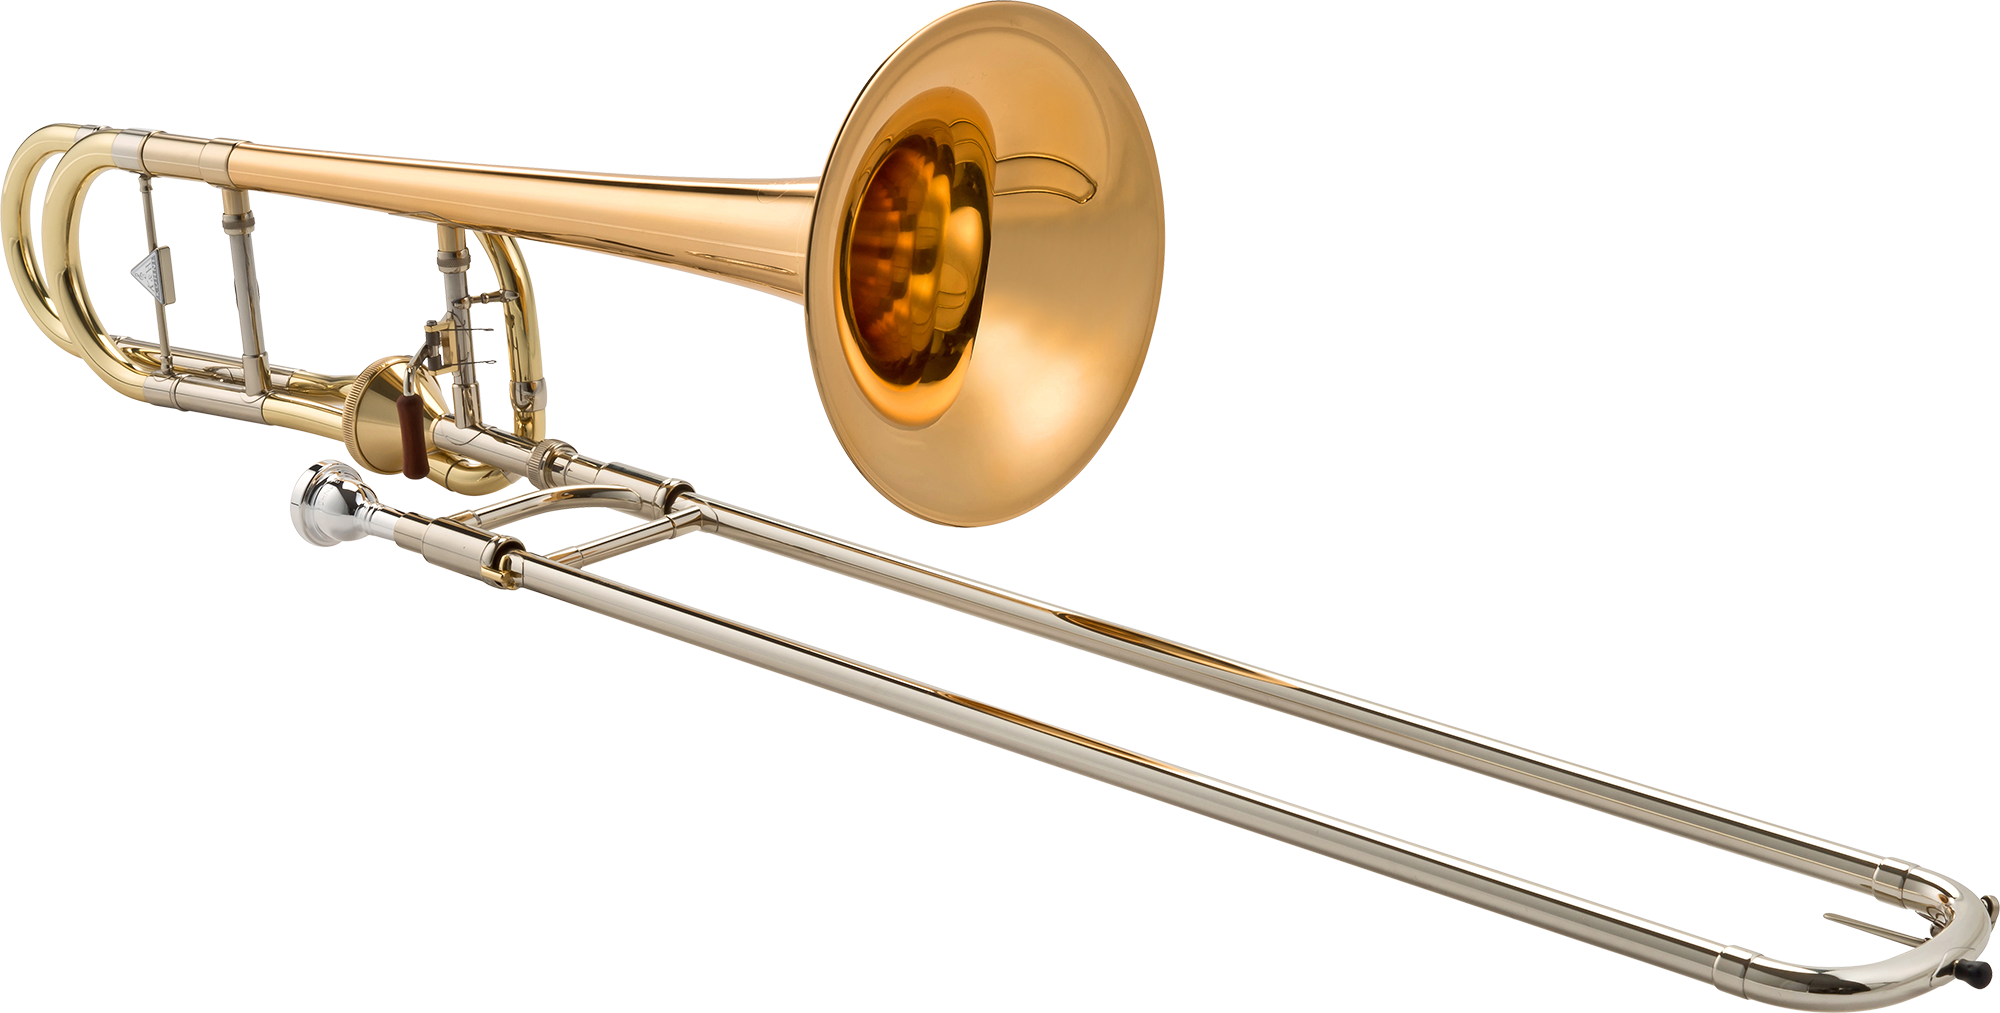 Trigger trombone clipart vector download Pin by Kushal Agarwal on Trombone | Trombone, Instruments vector download